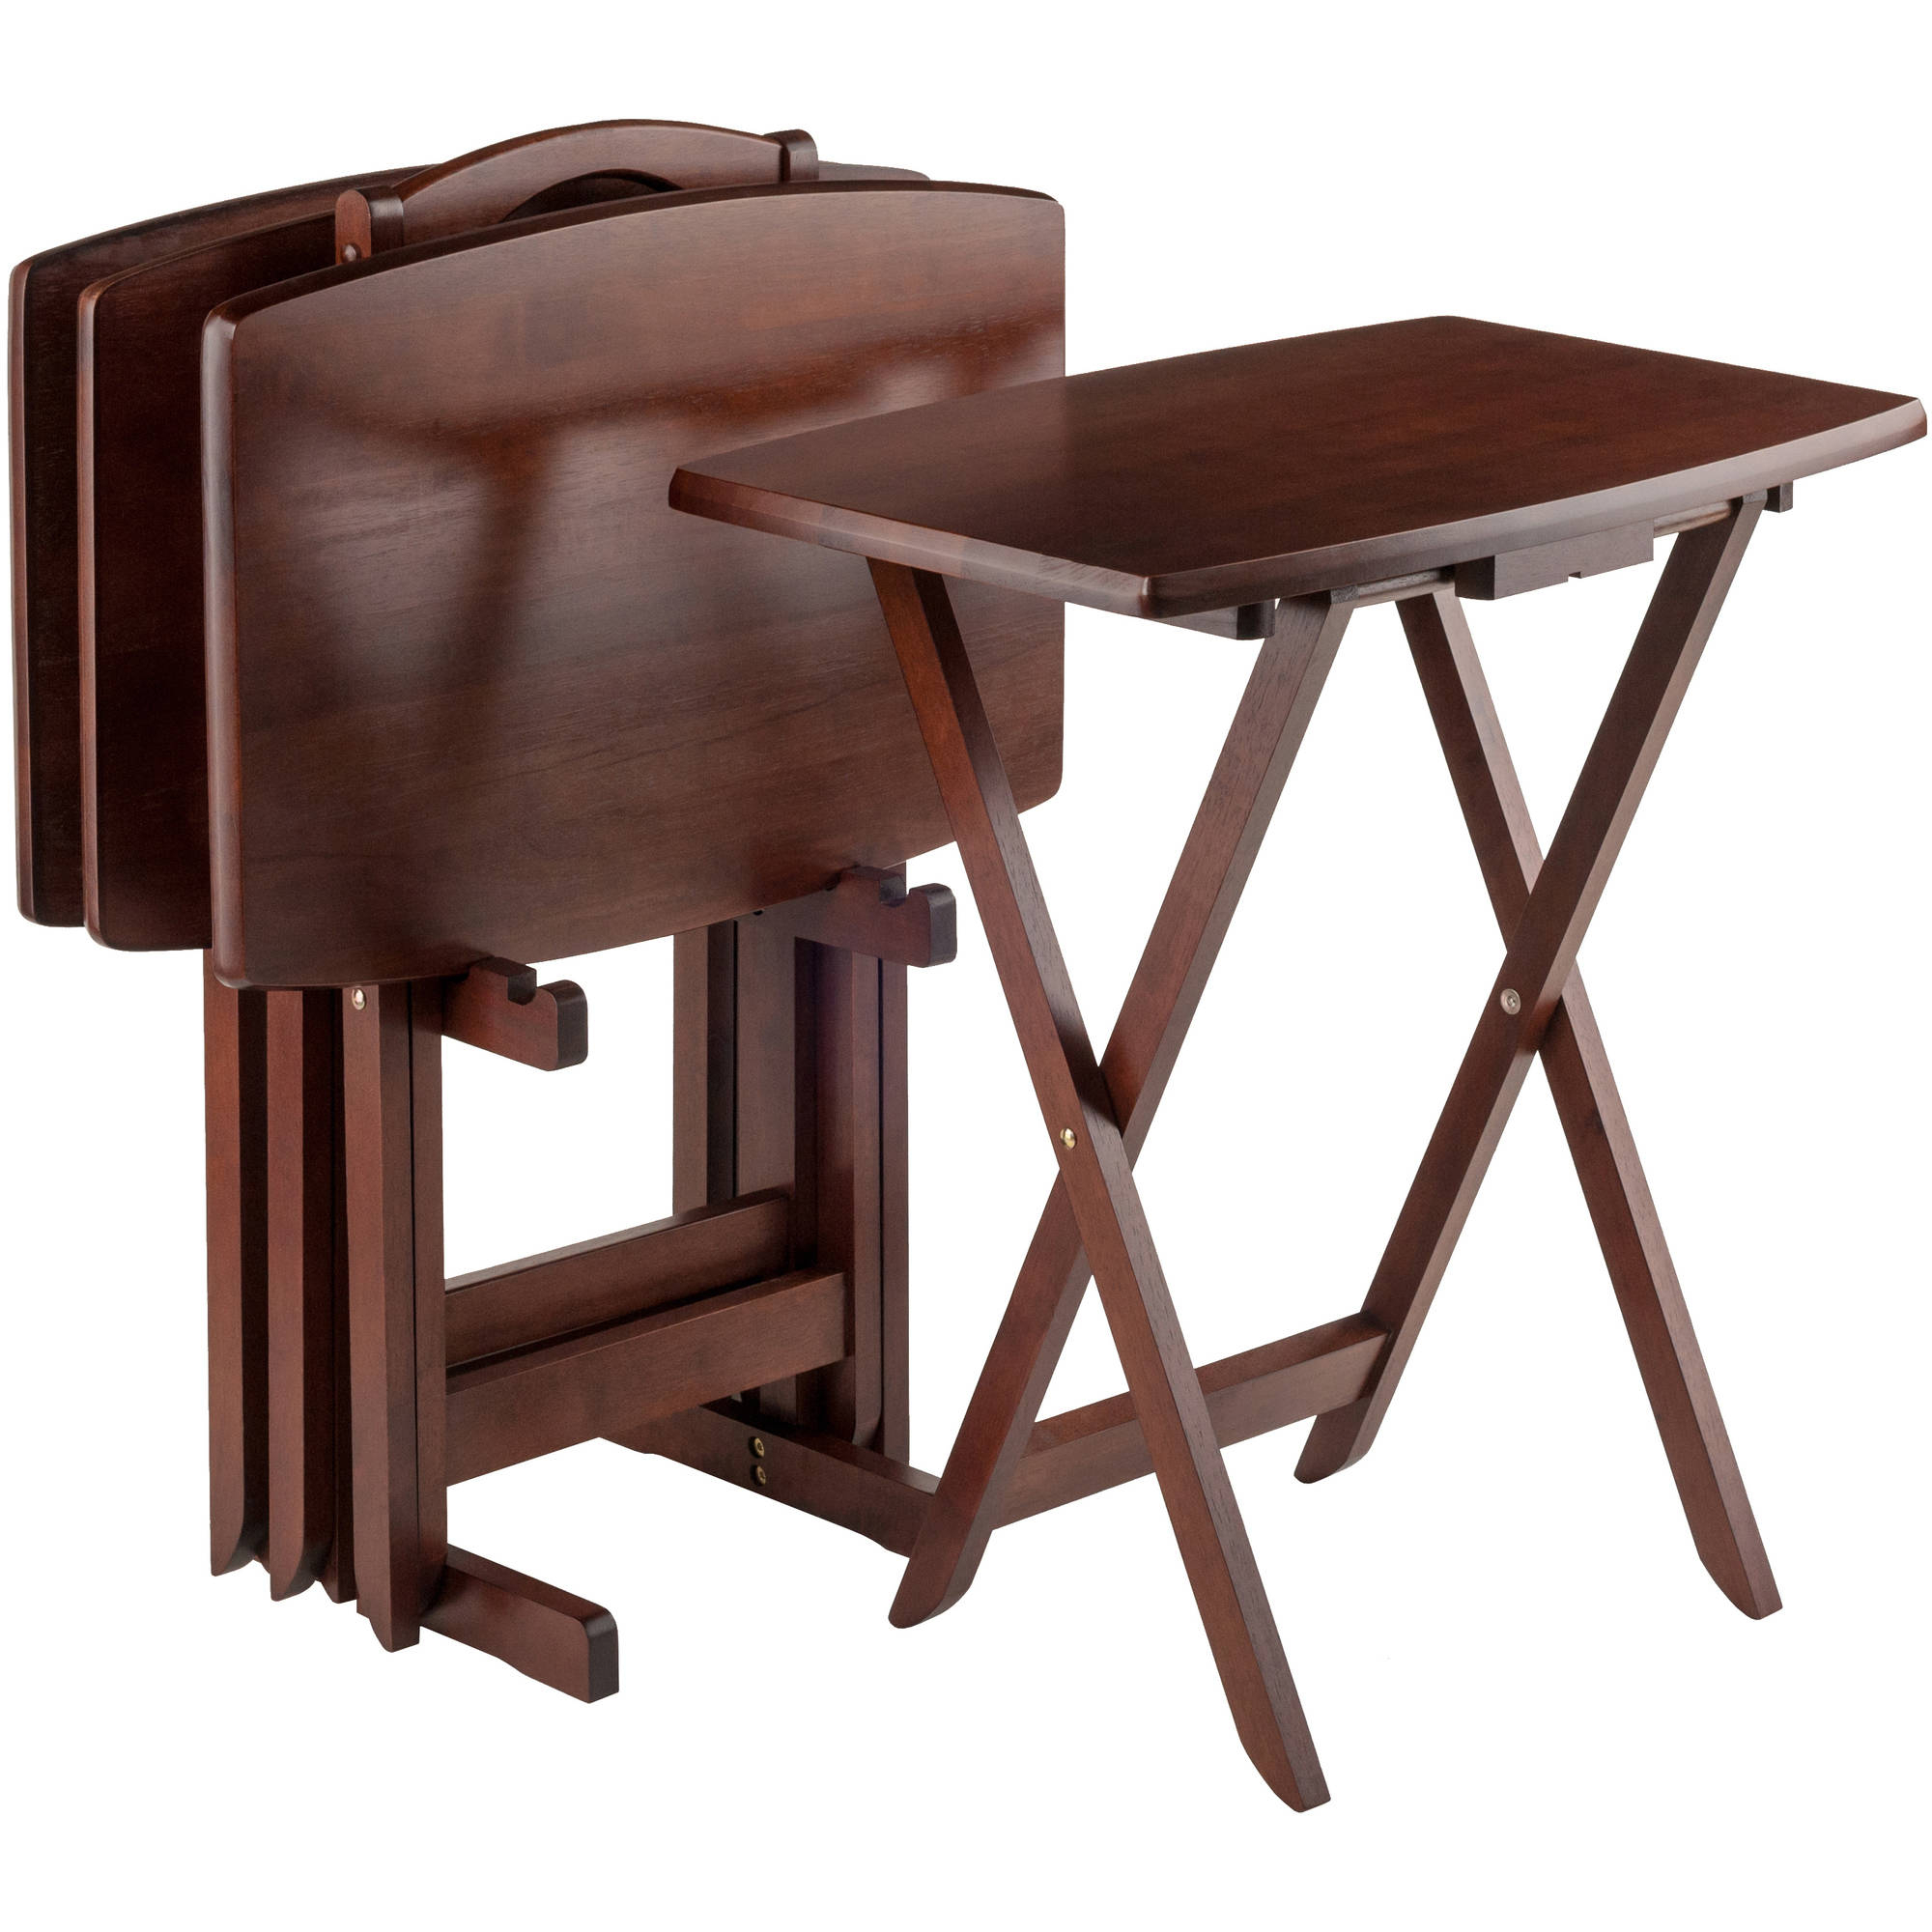 Widely Used Folding Tv Trays With Stand Inside Folding Tv And Snack Tray Table Black Set Of 2 – Walmart (View 6 of 20)